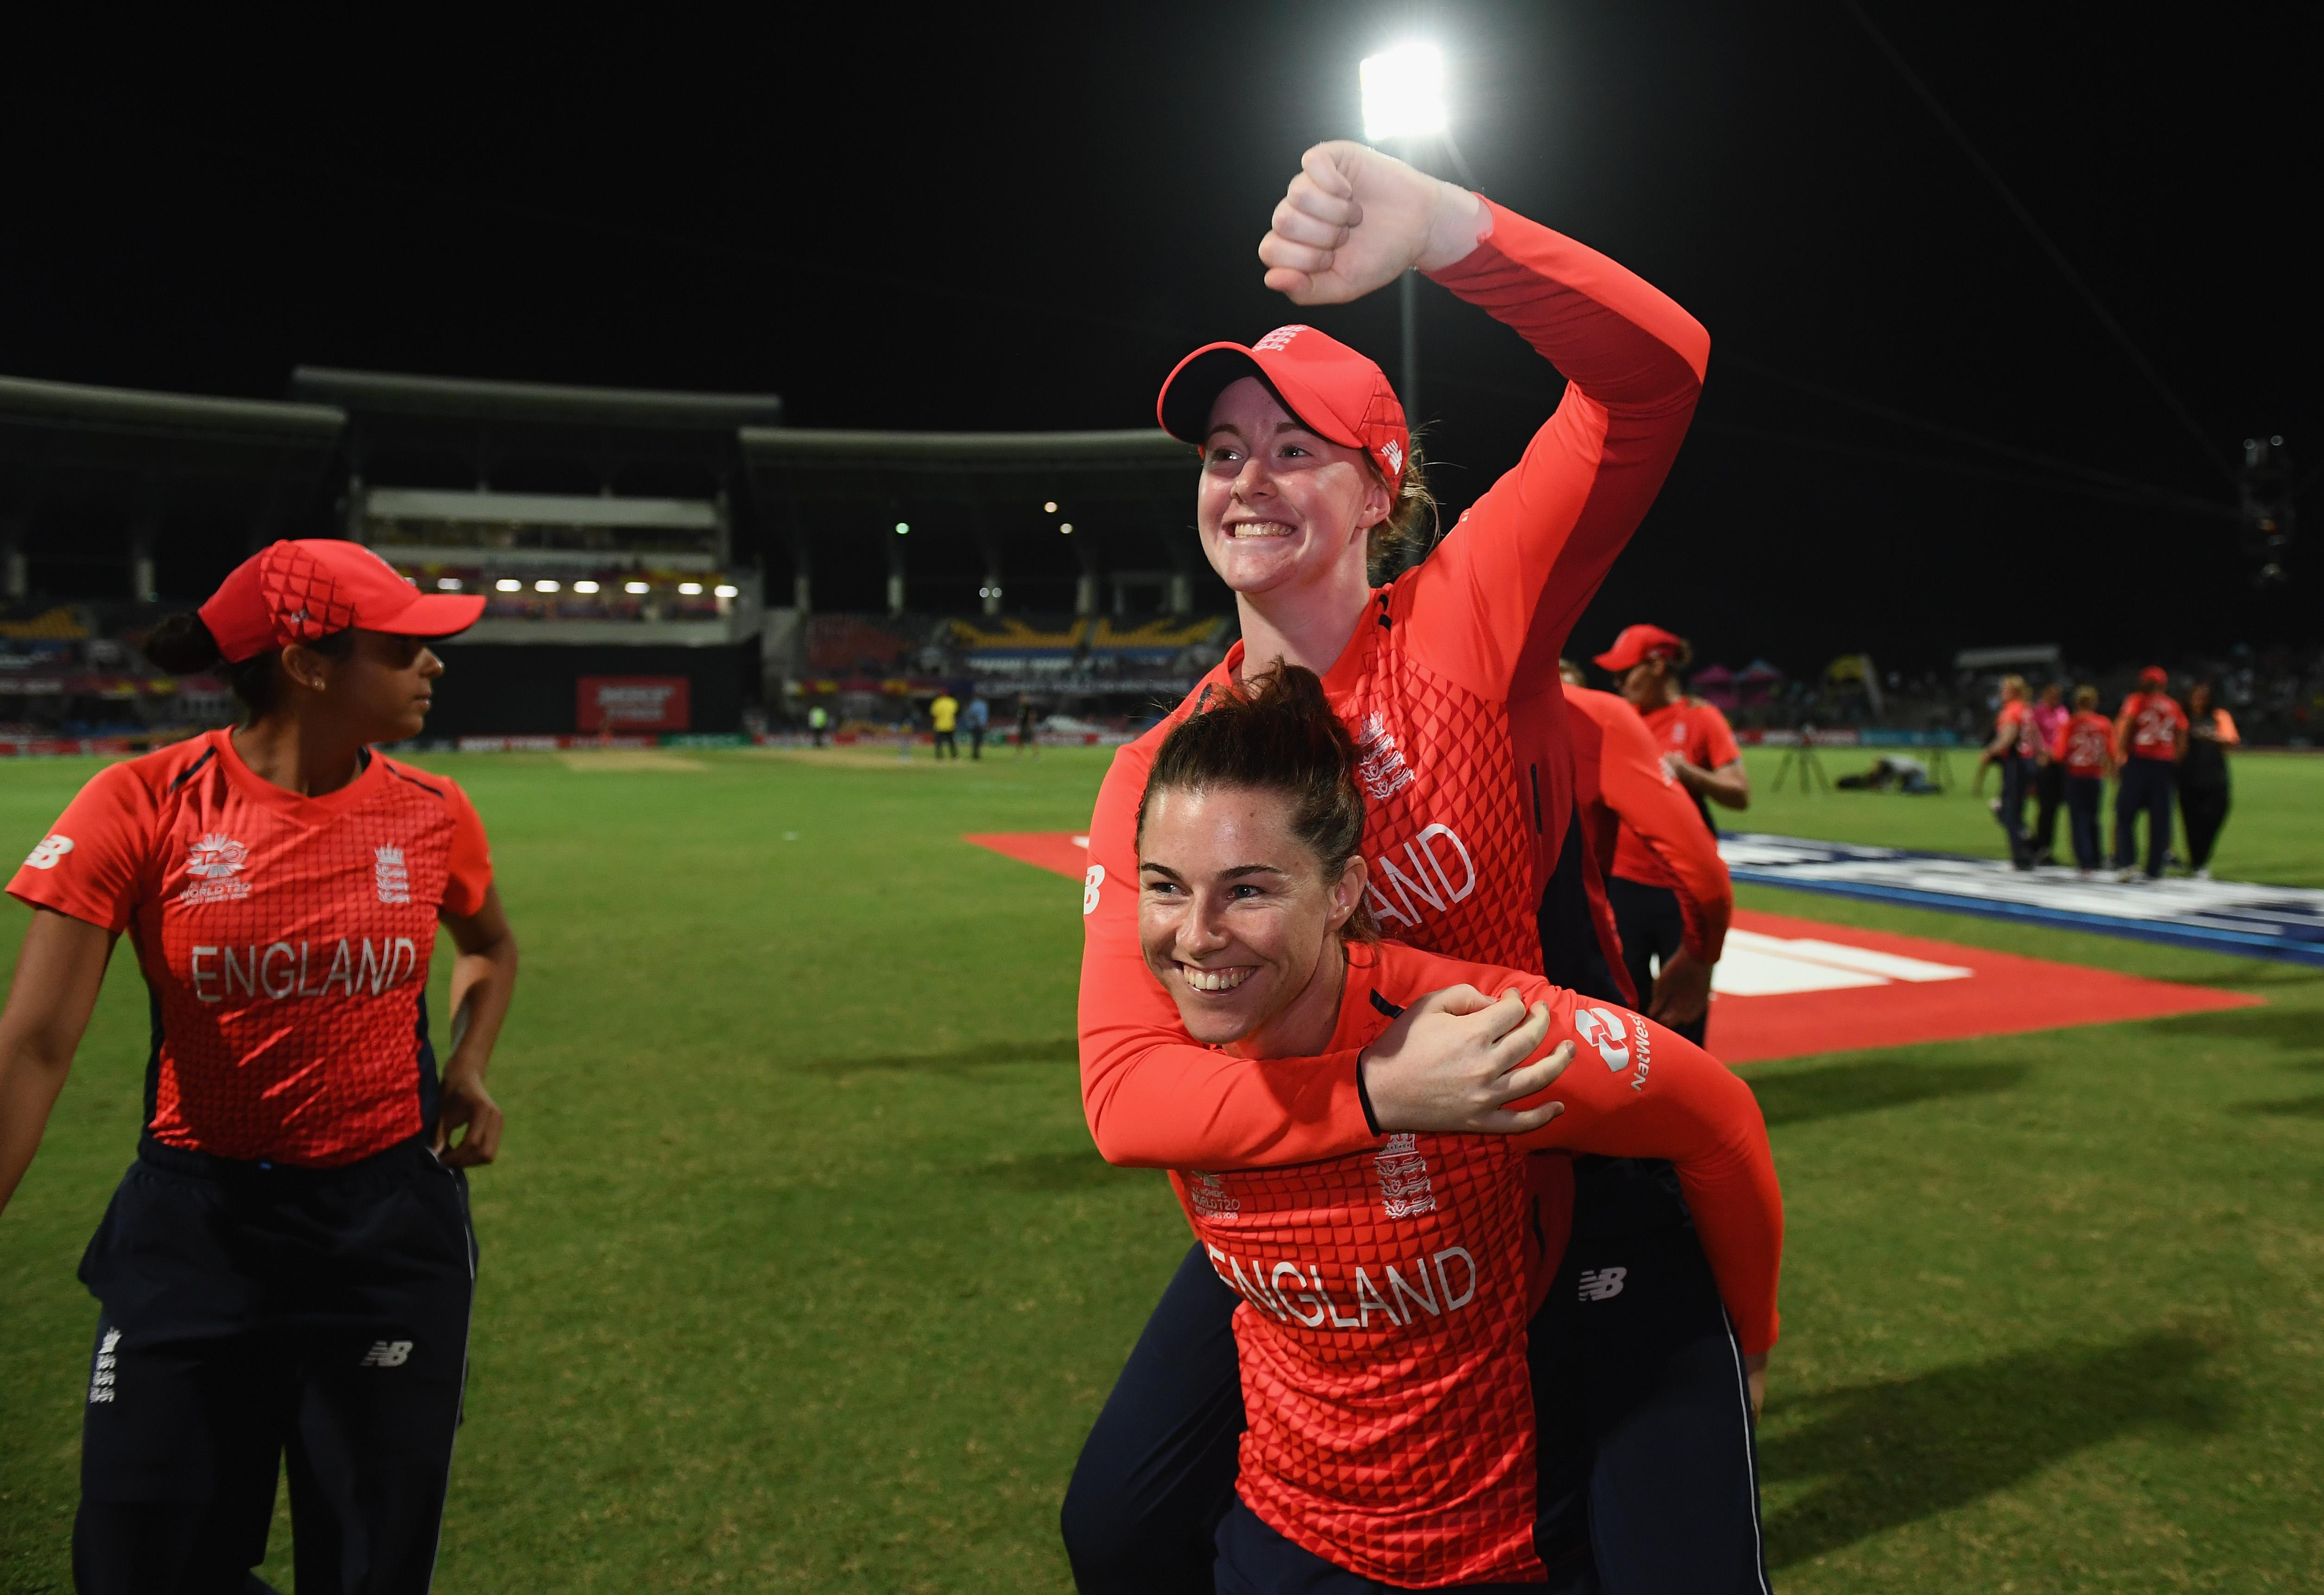 England women will face Australia for the third time in a World T20 Final in six years, hoping to overcome their defeats in 2012 and 2014